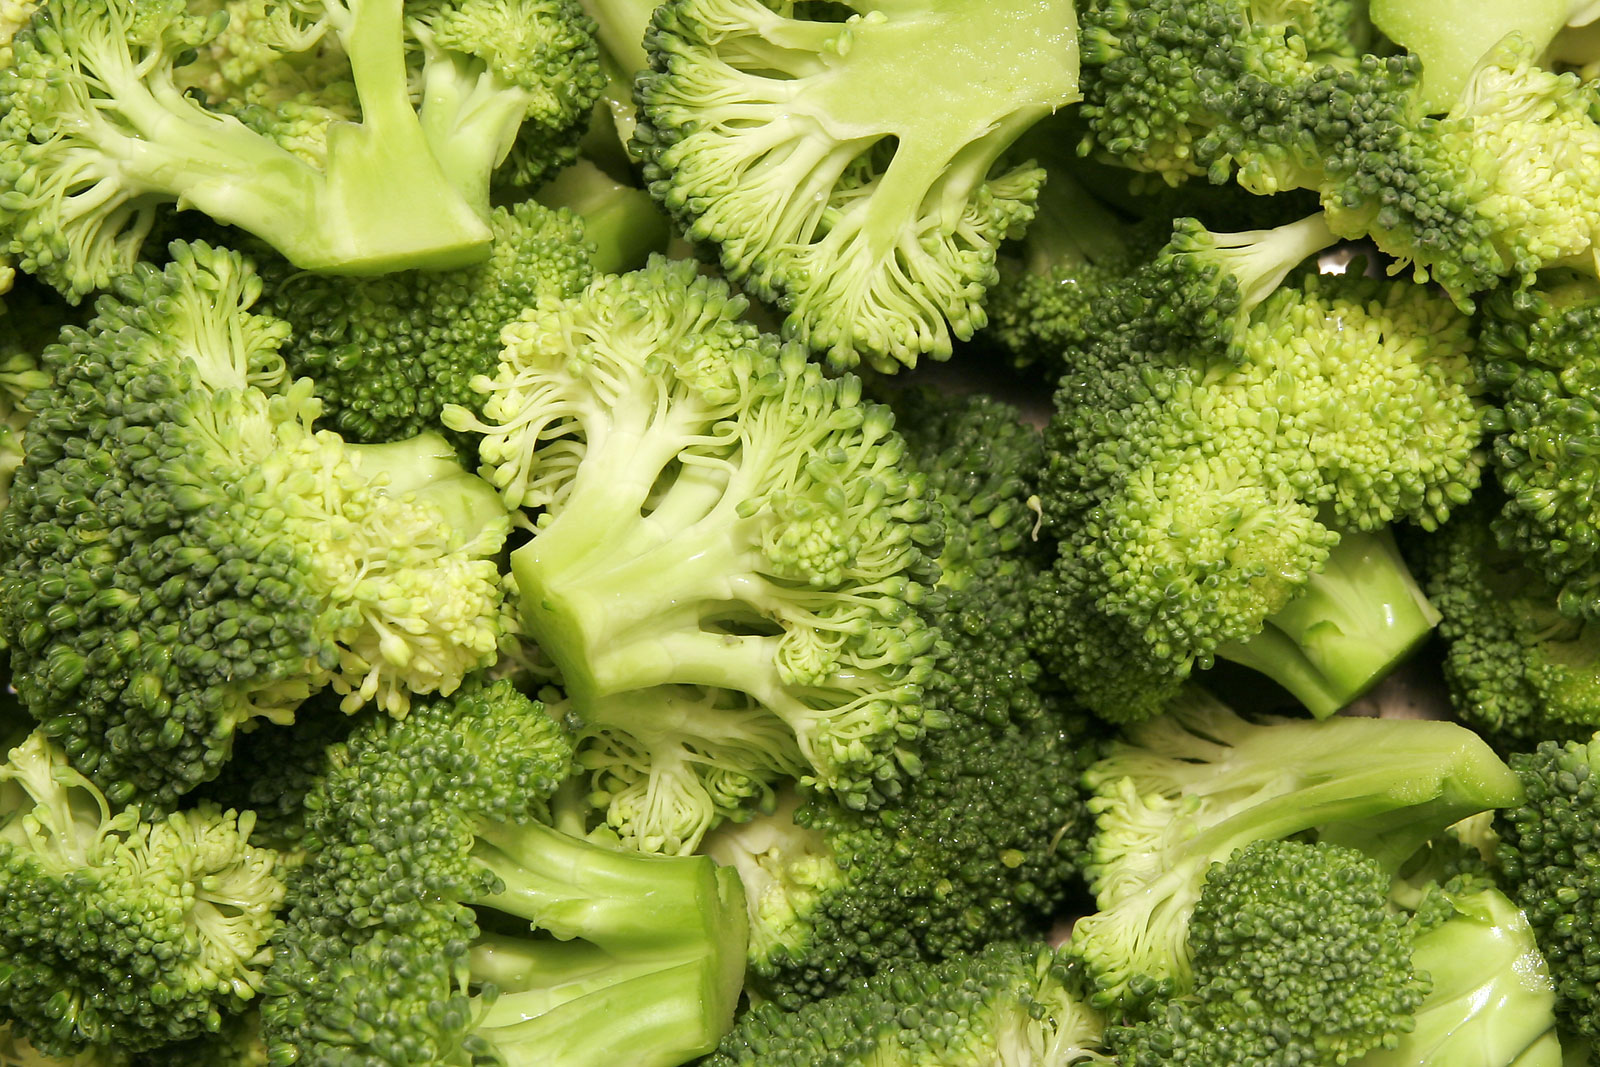 Broccoli: Benefits of this Super Vegetable